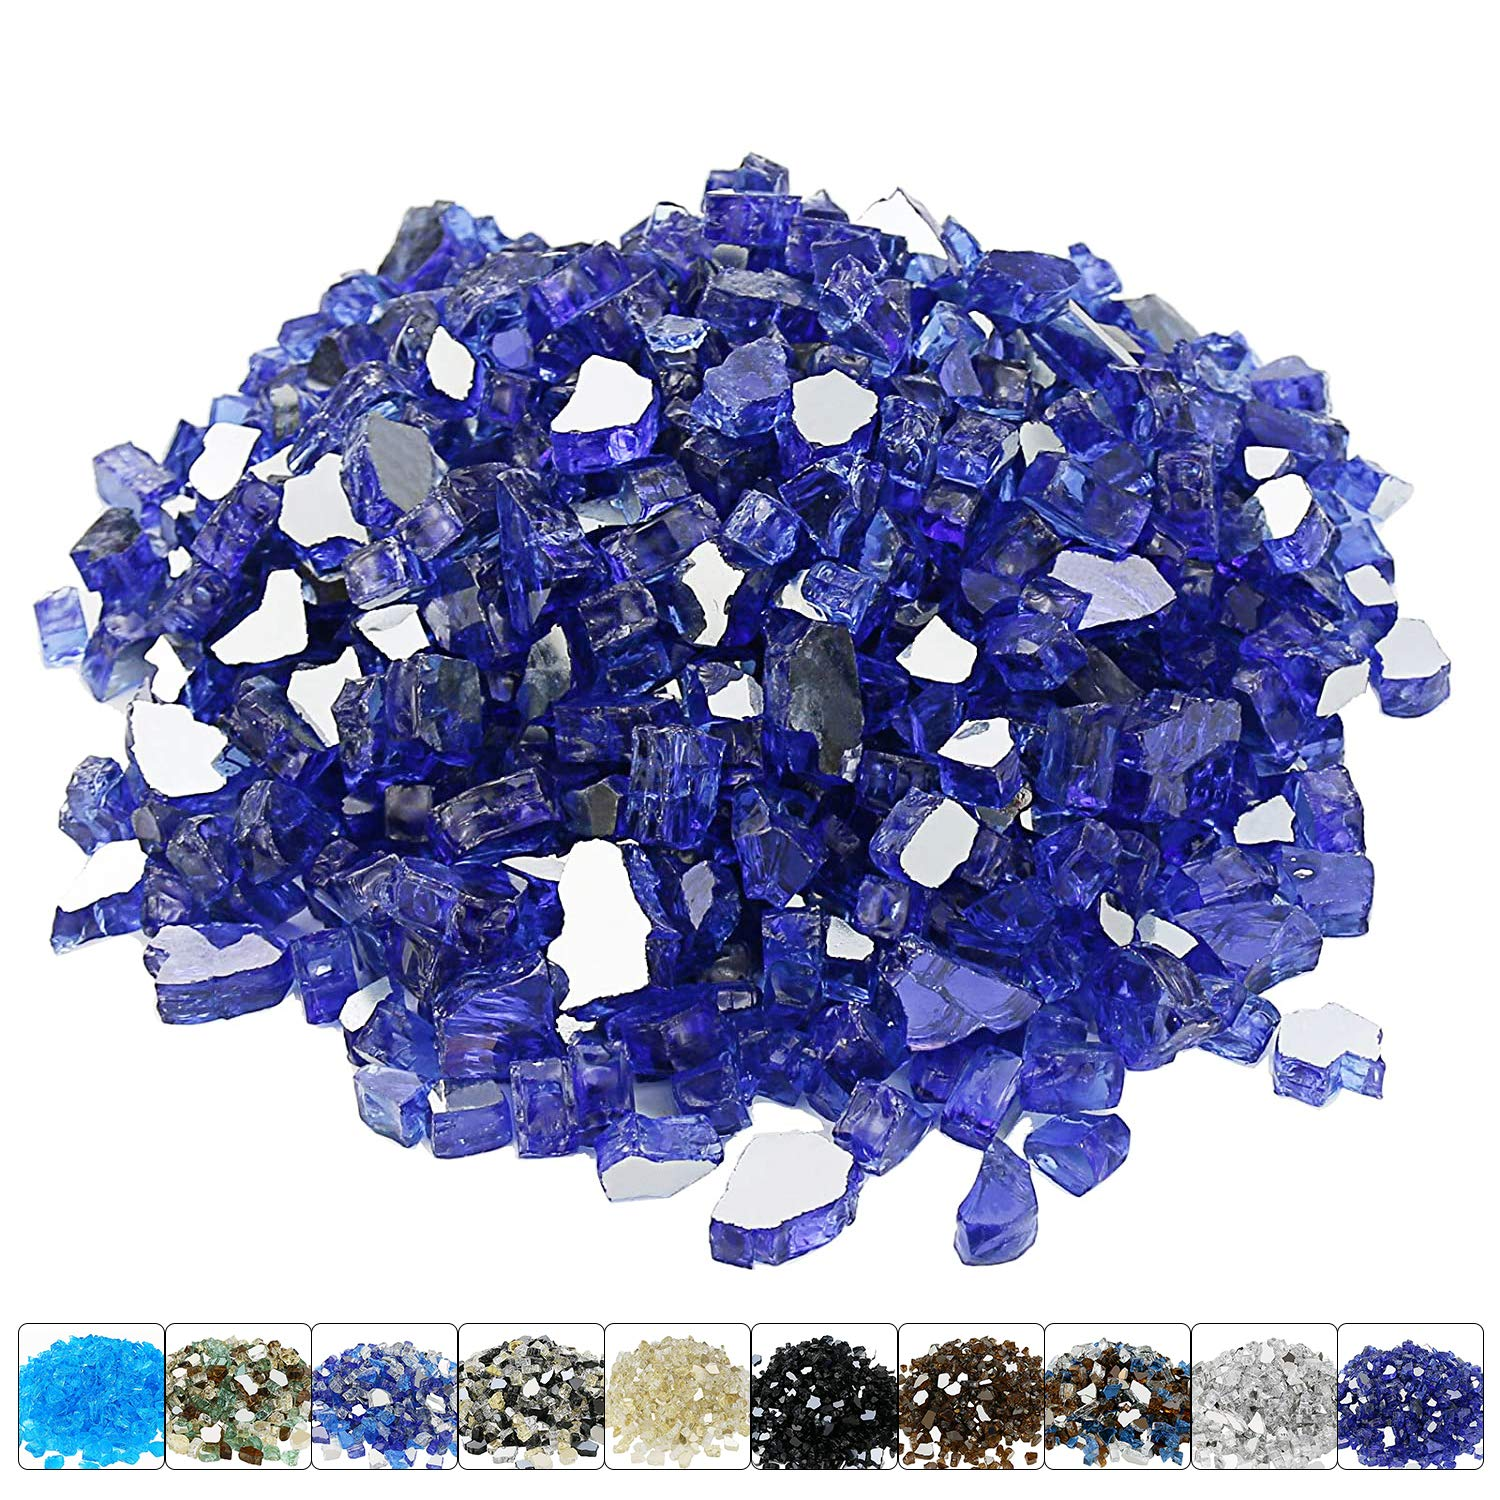 Hisencn 1/2 Inch Cobalt Blue Reflective Fire Glass Decorative for Natural or Propane Fire Pit, Fireplace, Tempered Glass Rocks Good for Indoor and Outdoor 10-Pounds